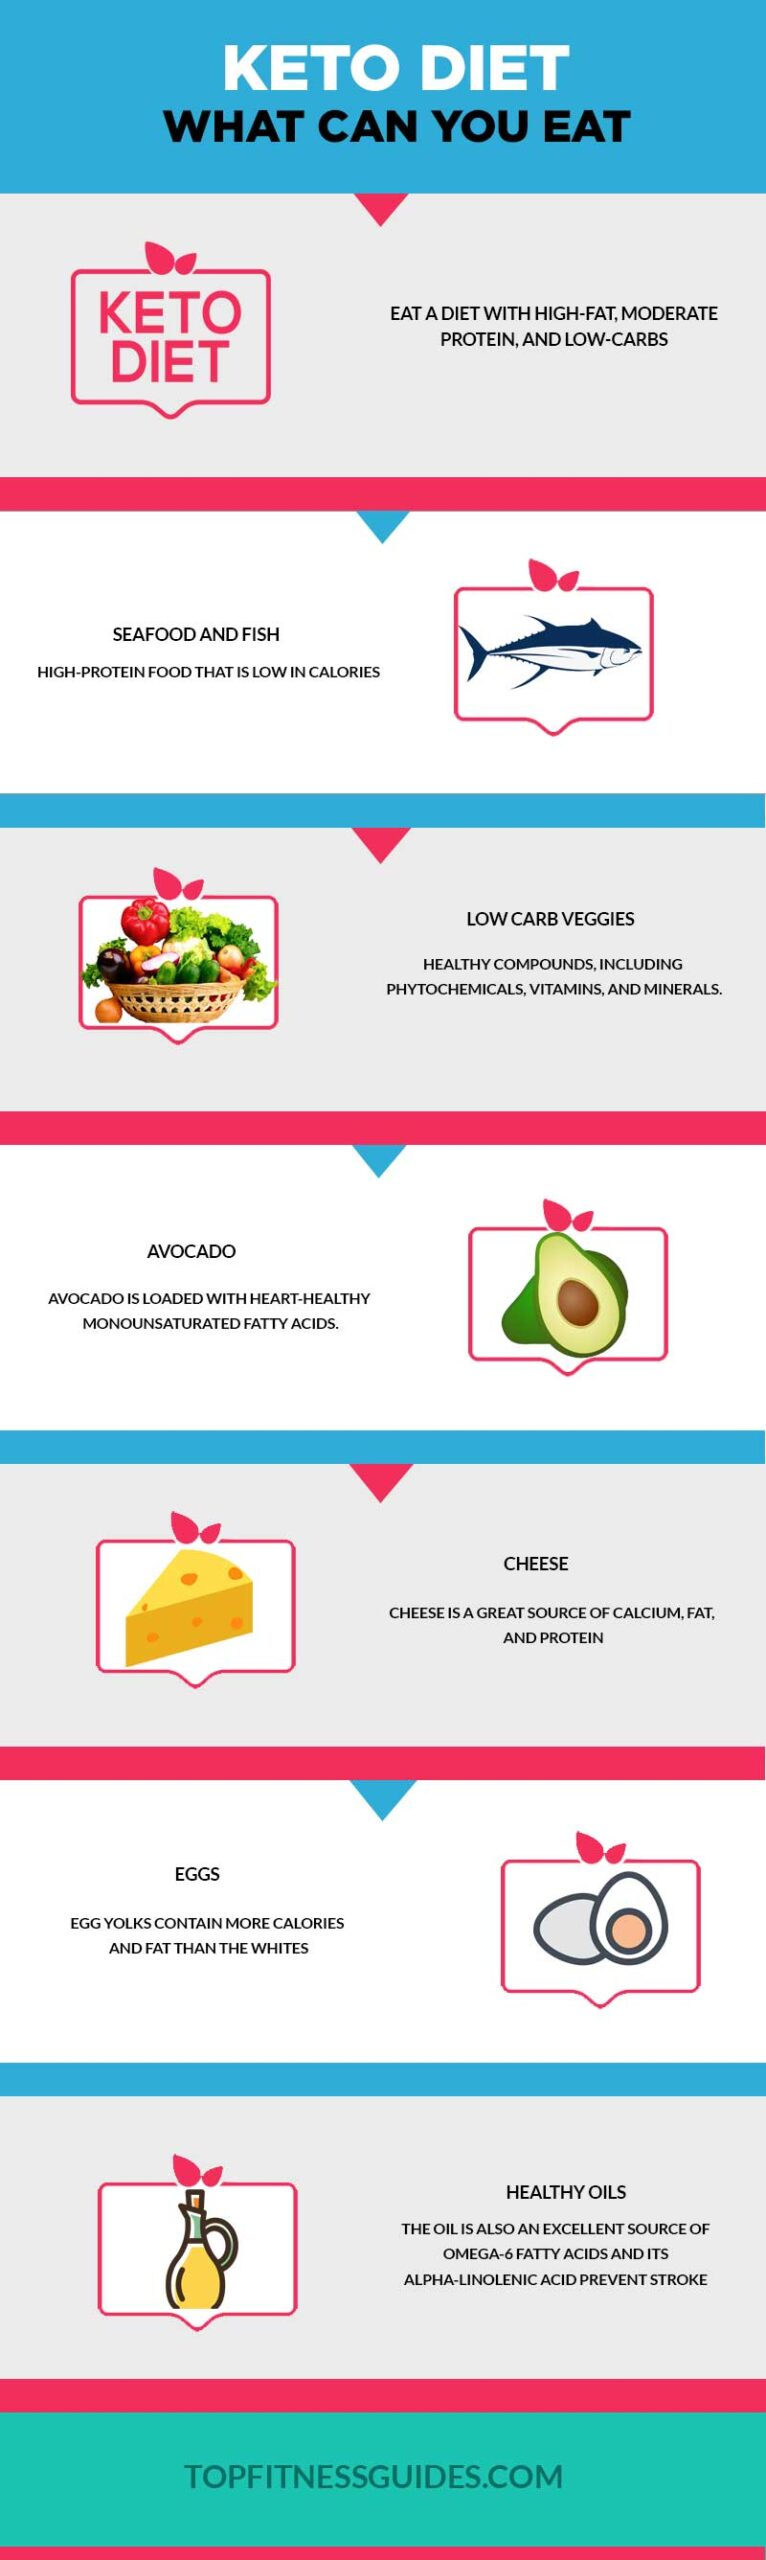 What Can You Eat on Keto Diet Infographic